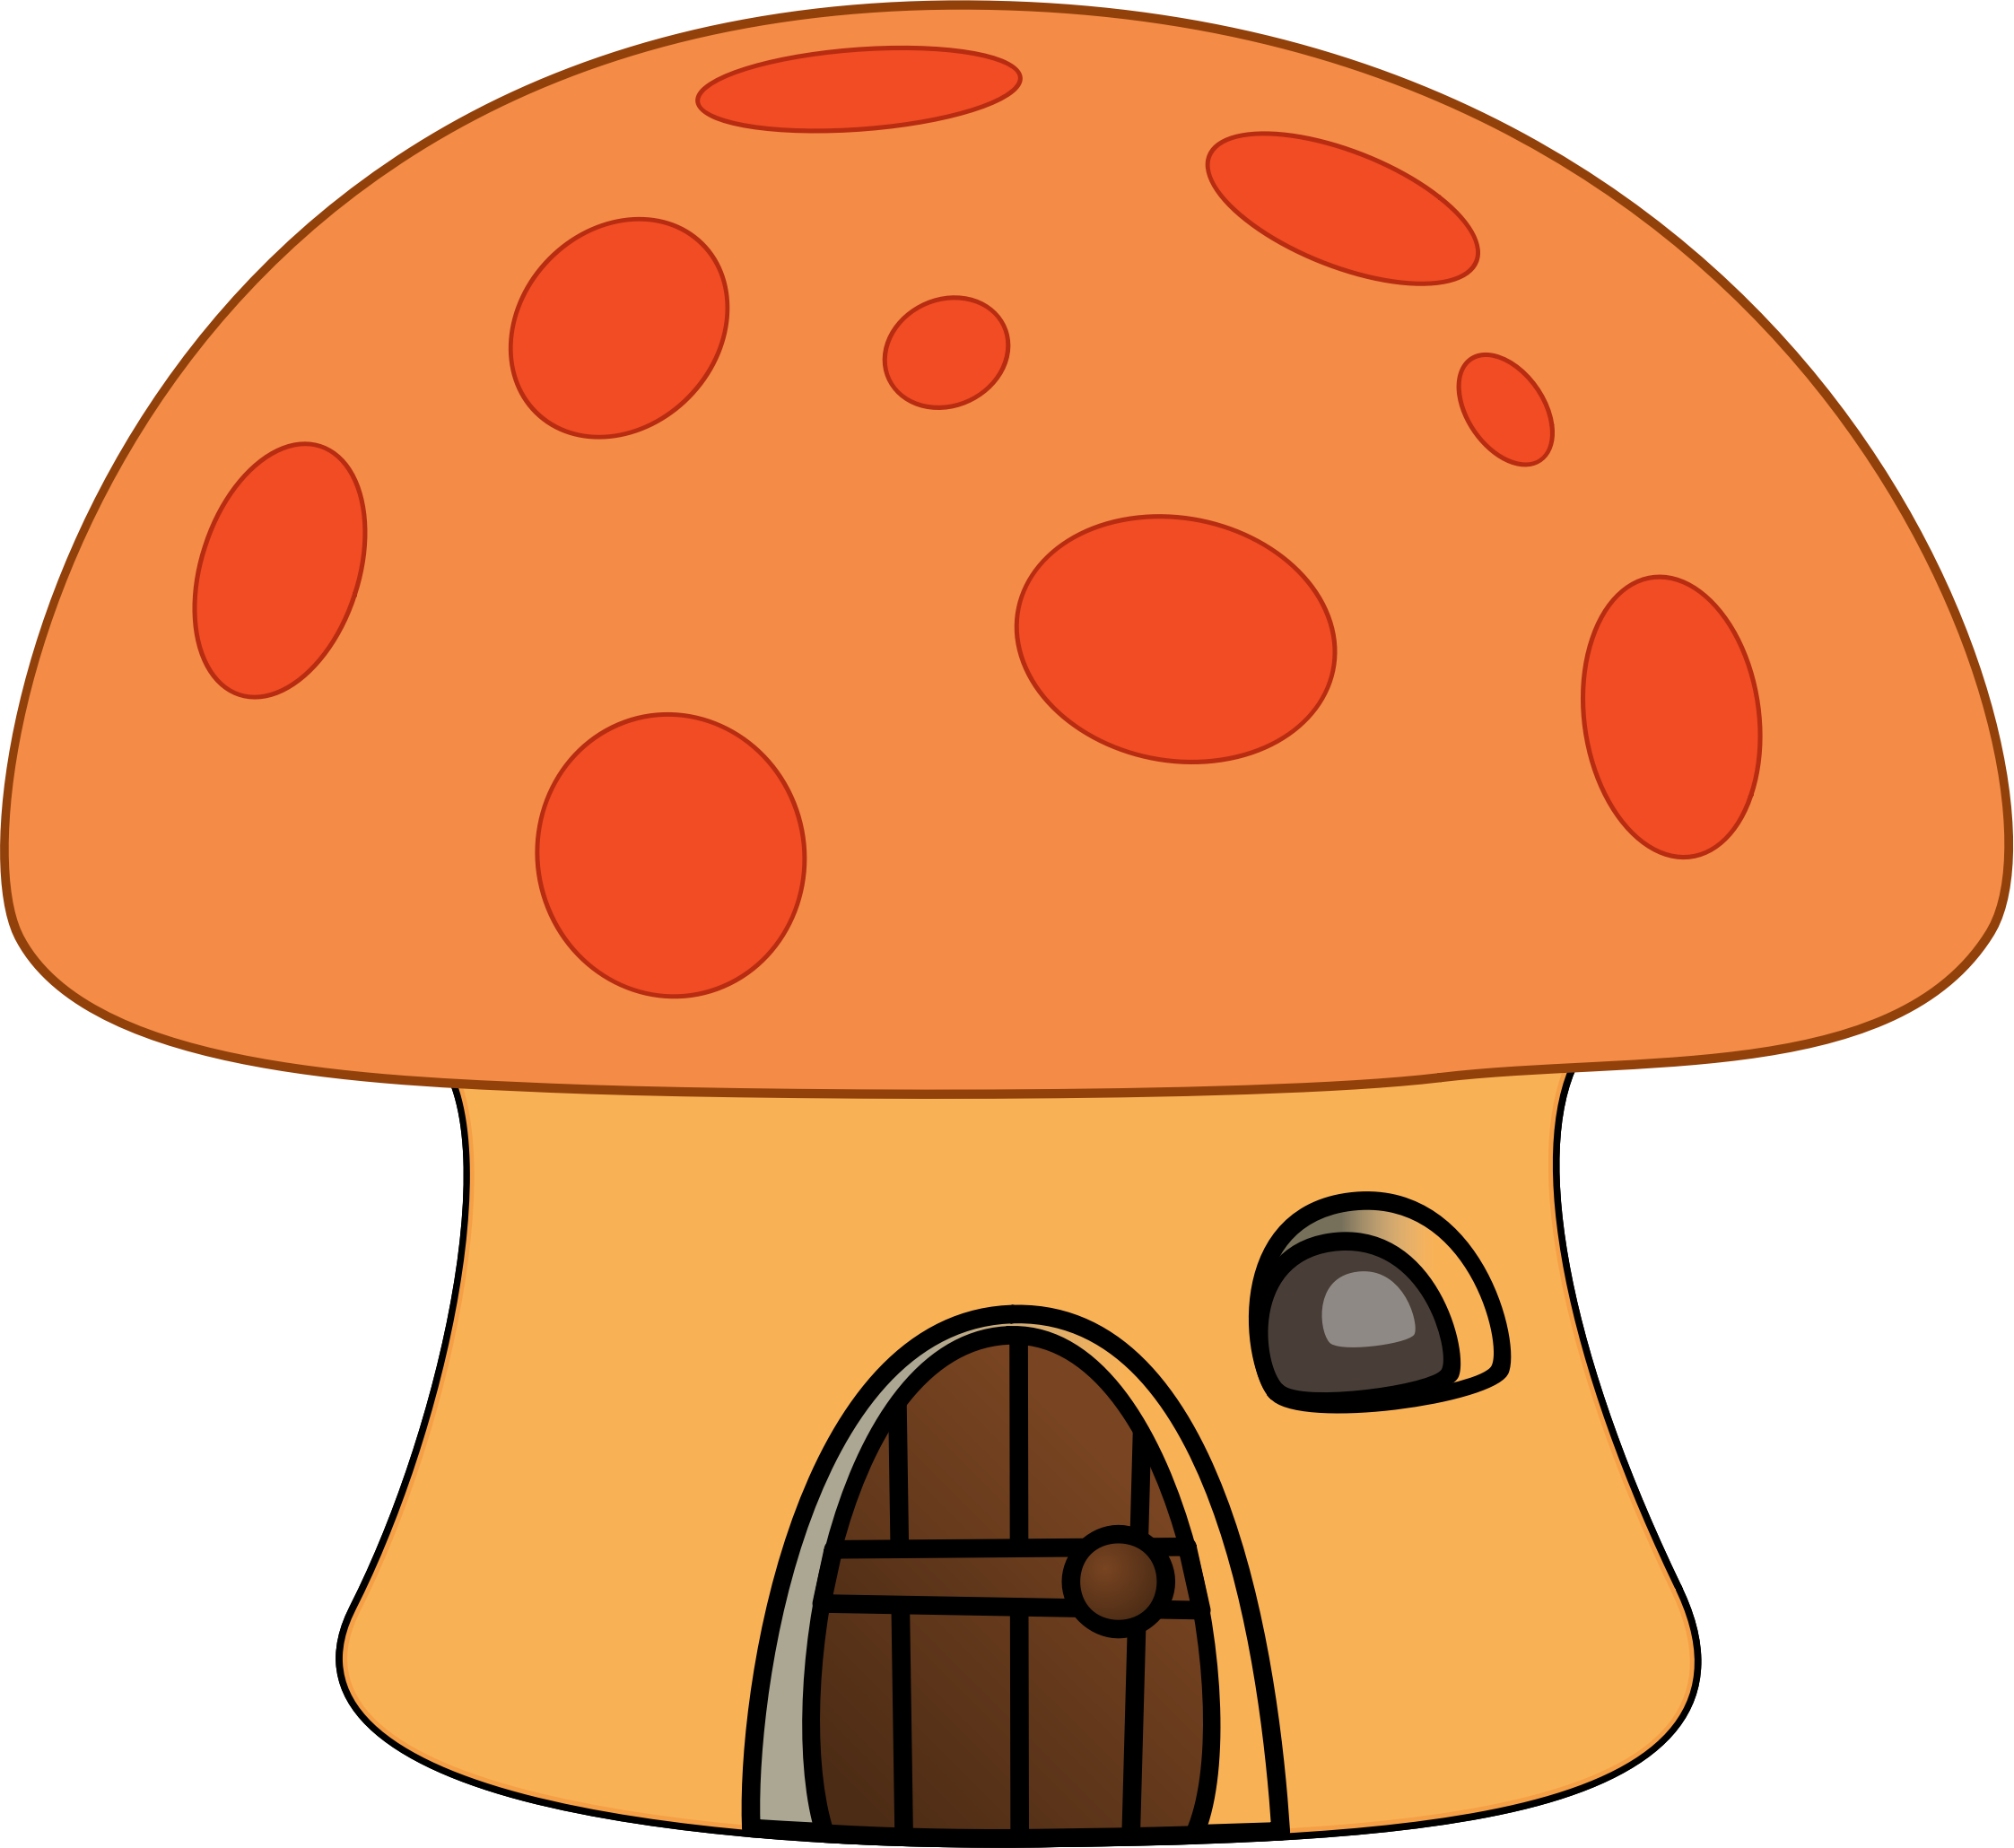 Orange mushroom house by Pippi2011